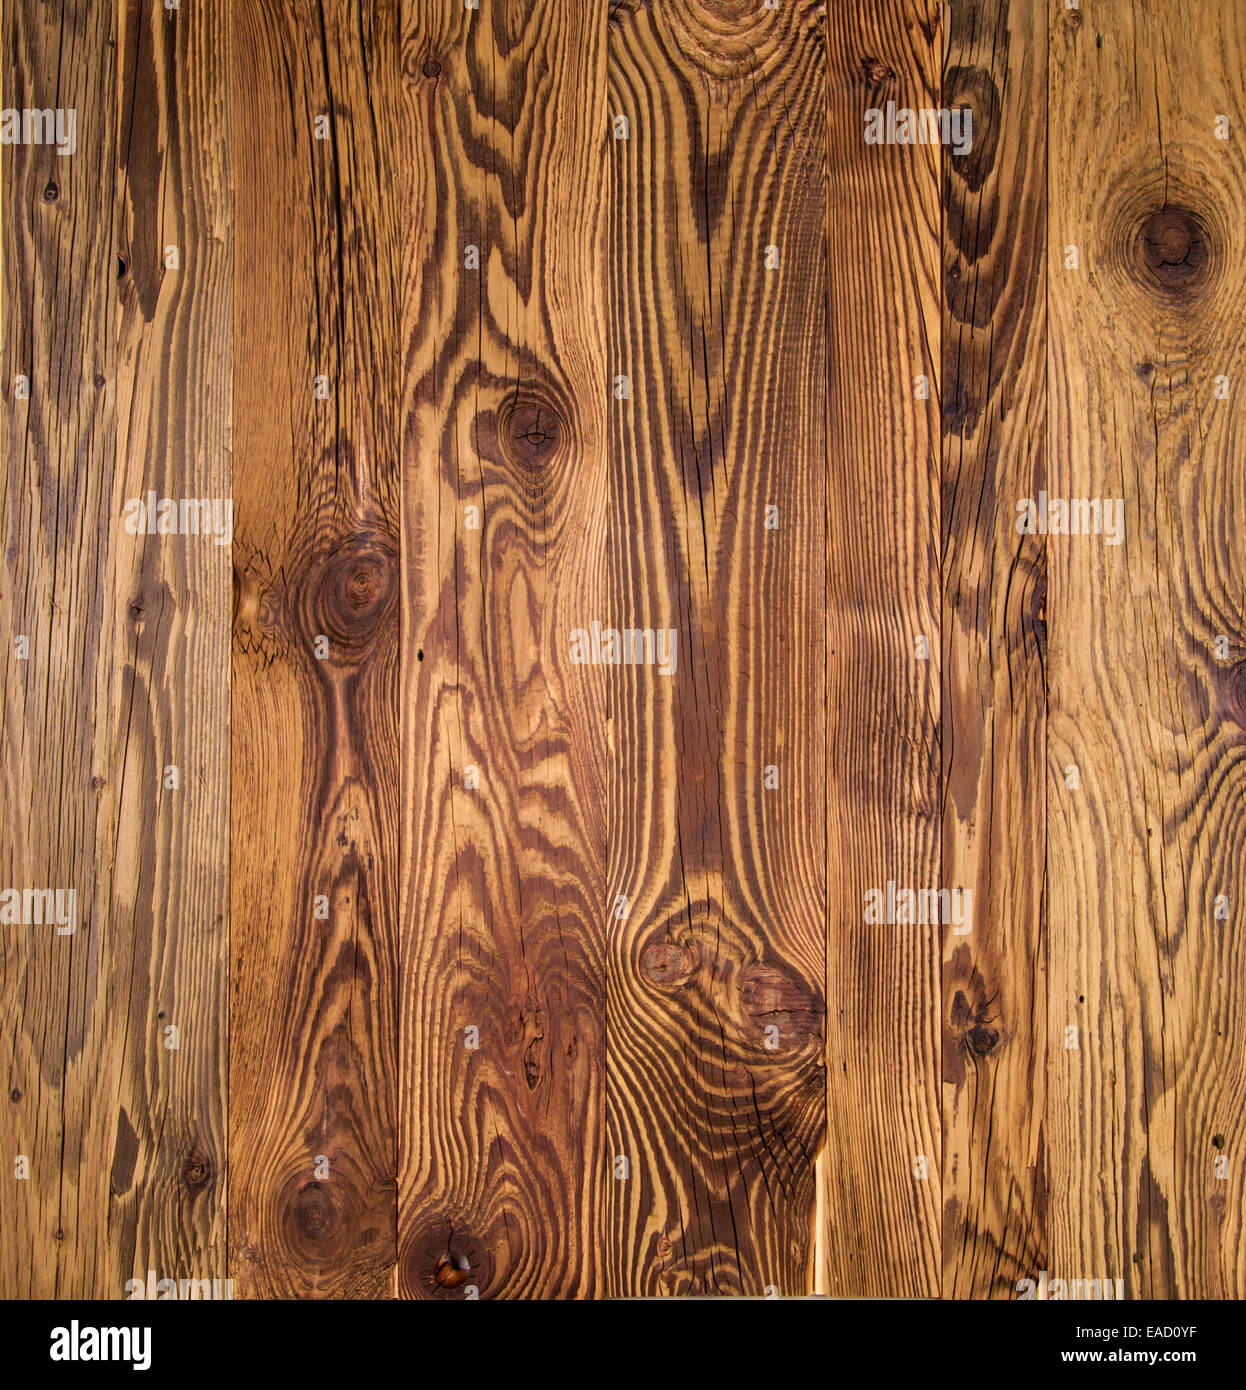 Texture of old wooden planks - Stock Image